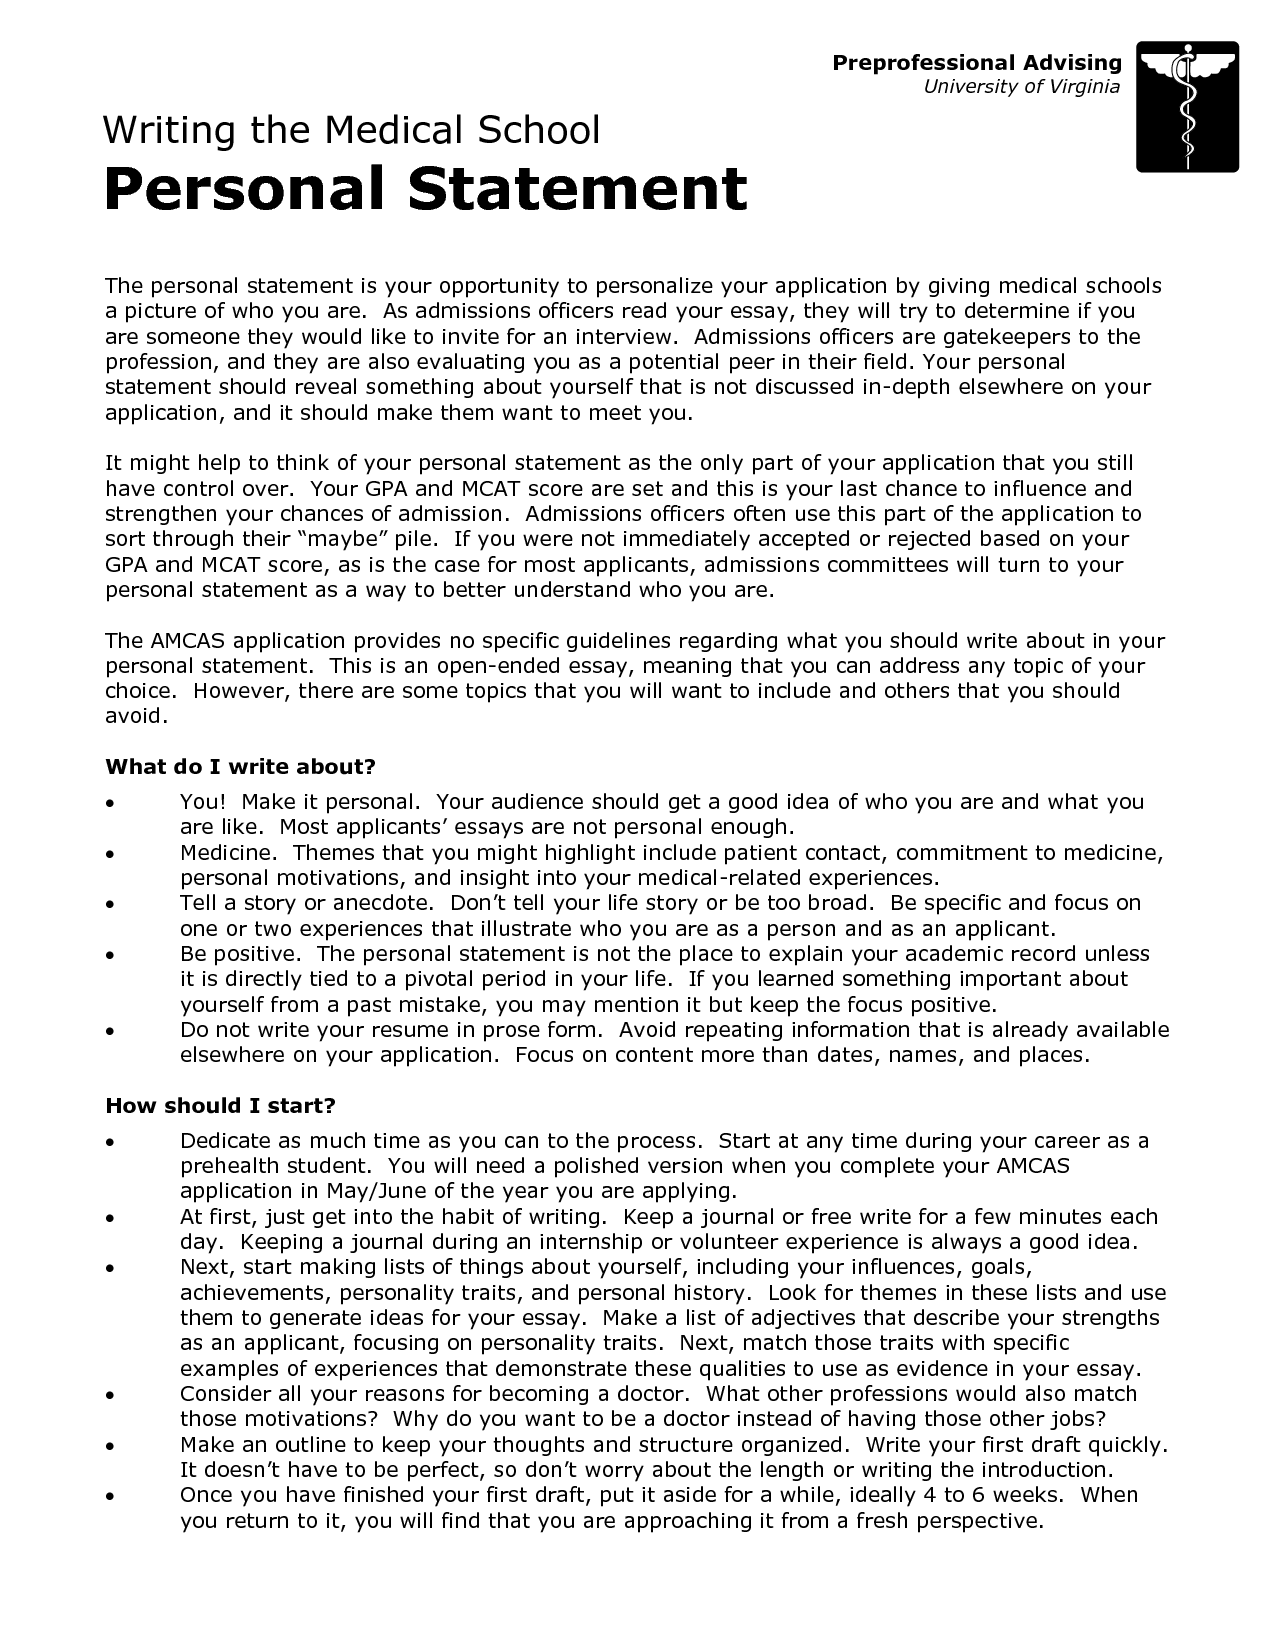 Can I Pay Someone to Do My Personal Statement?